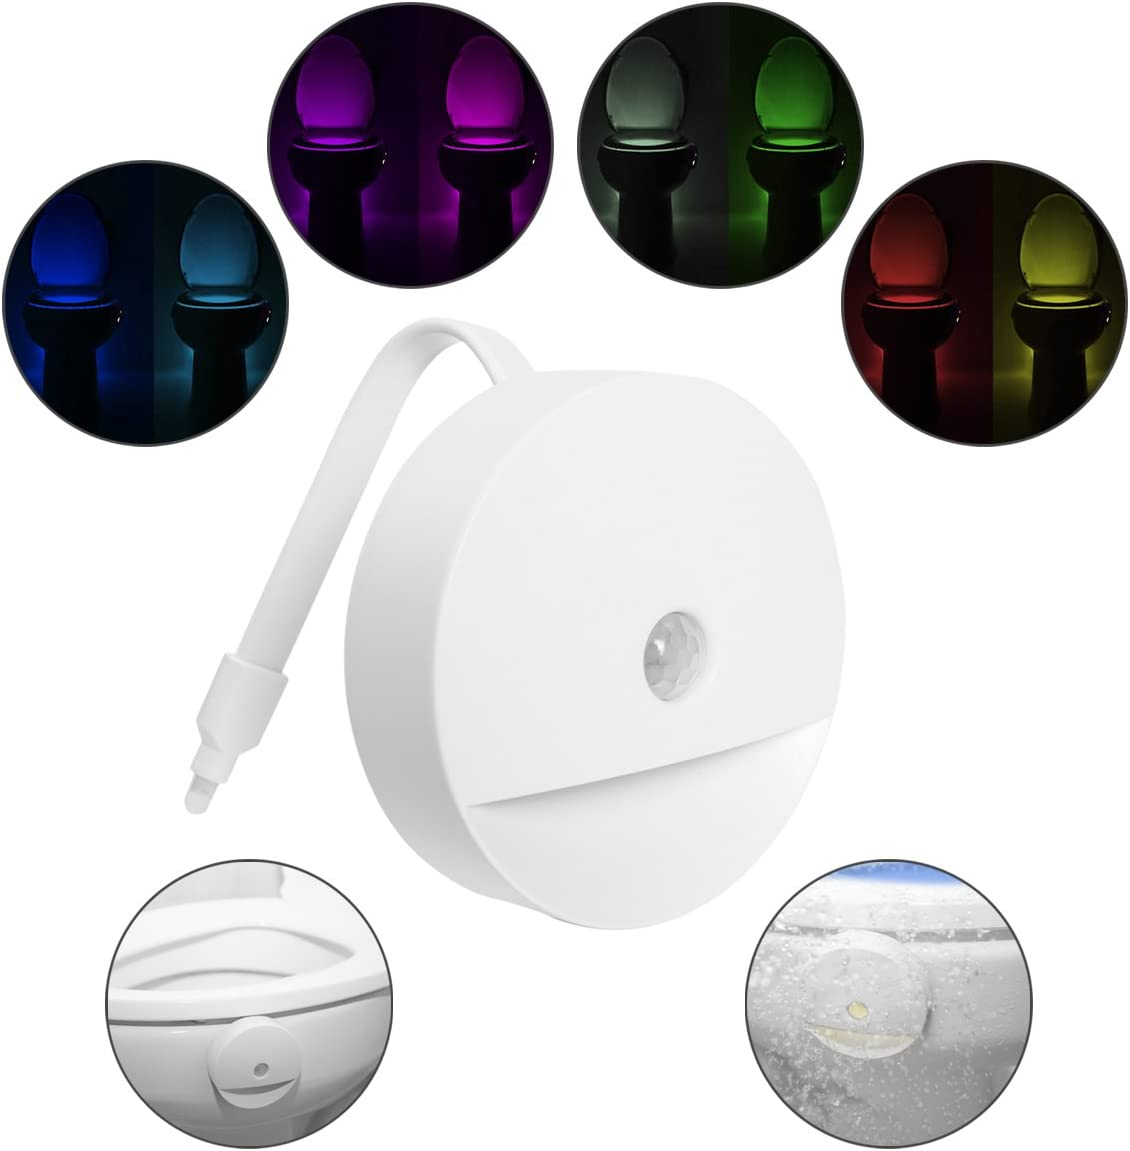 Lusaf Home Toilet Bathroom Human Body Auto Motion Activated Sensor Seat Nights Lamp 8 Color Changes Colorful Motion Sensors Toilet Lights